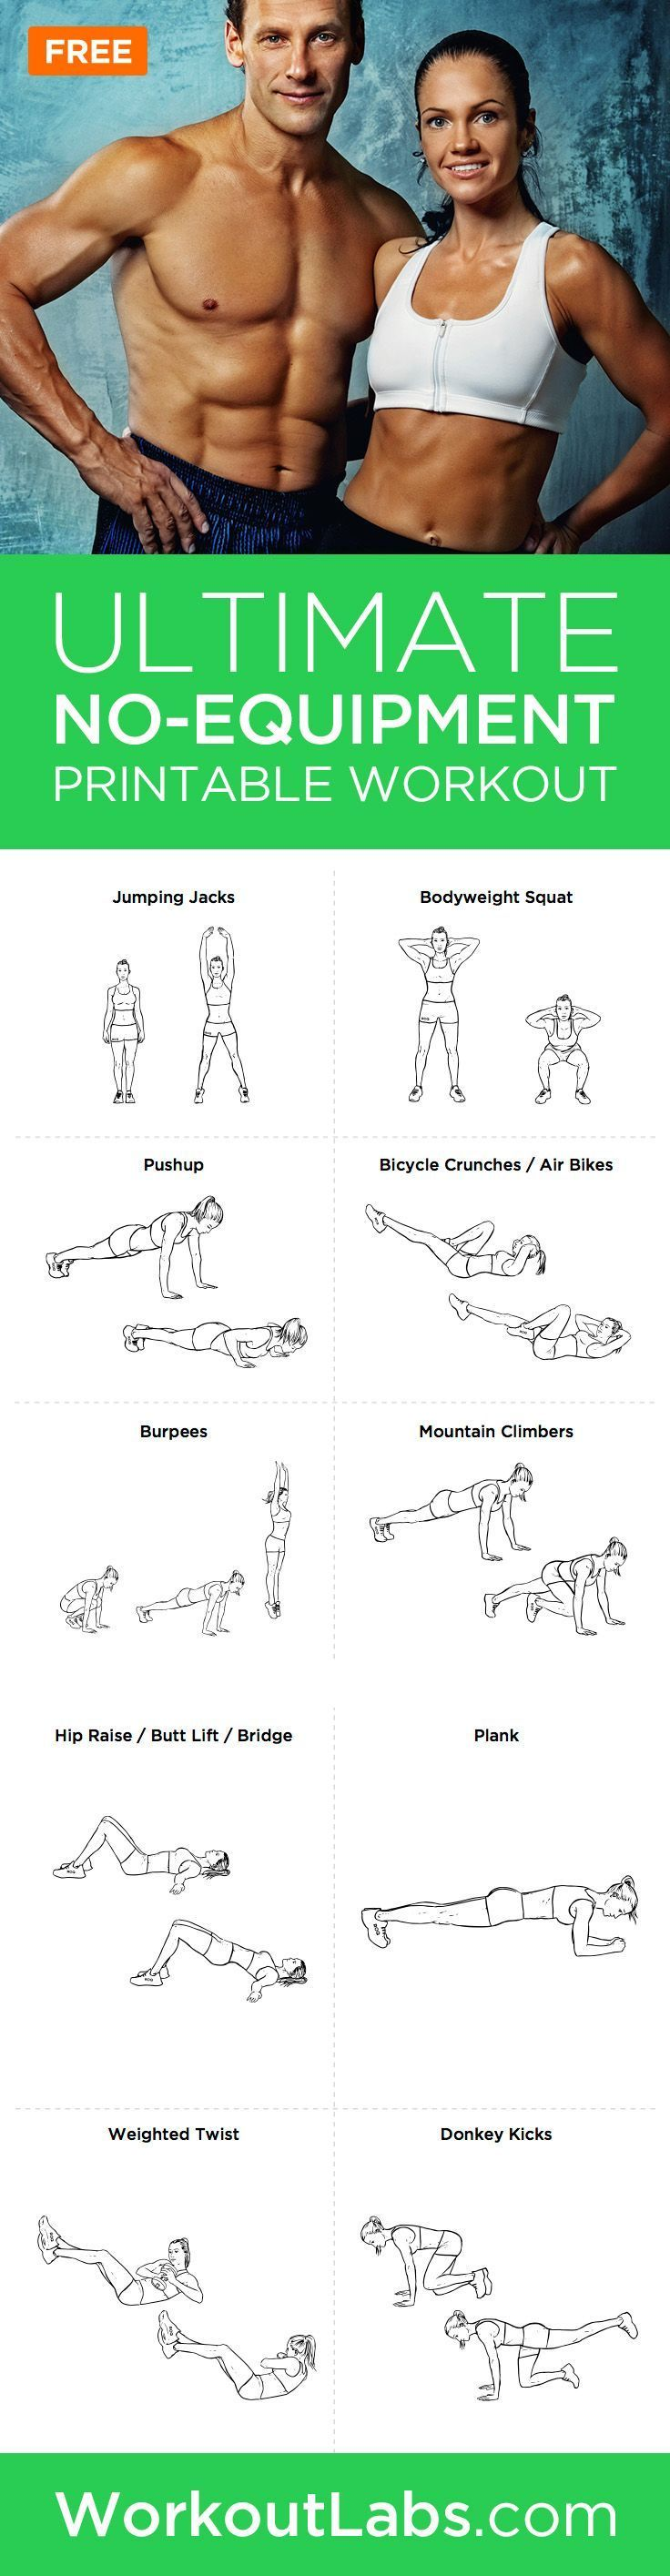 Ultimate At-Home No Equipment Workout Plan for Men and Women – Need a good full-body home-based workout that doesn't require gym equipment? Try this intense two-page bodyweight workout that you can do anywhere!